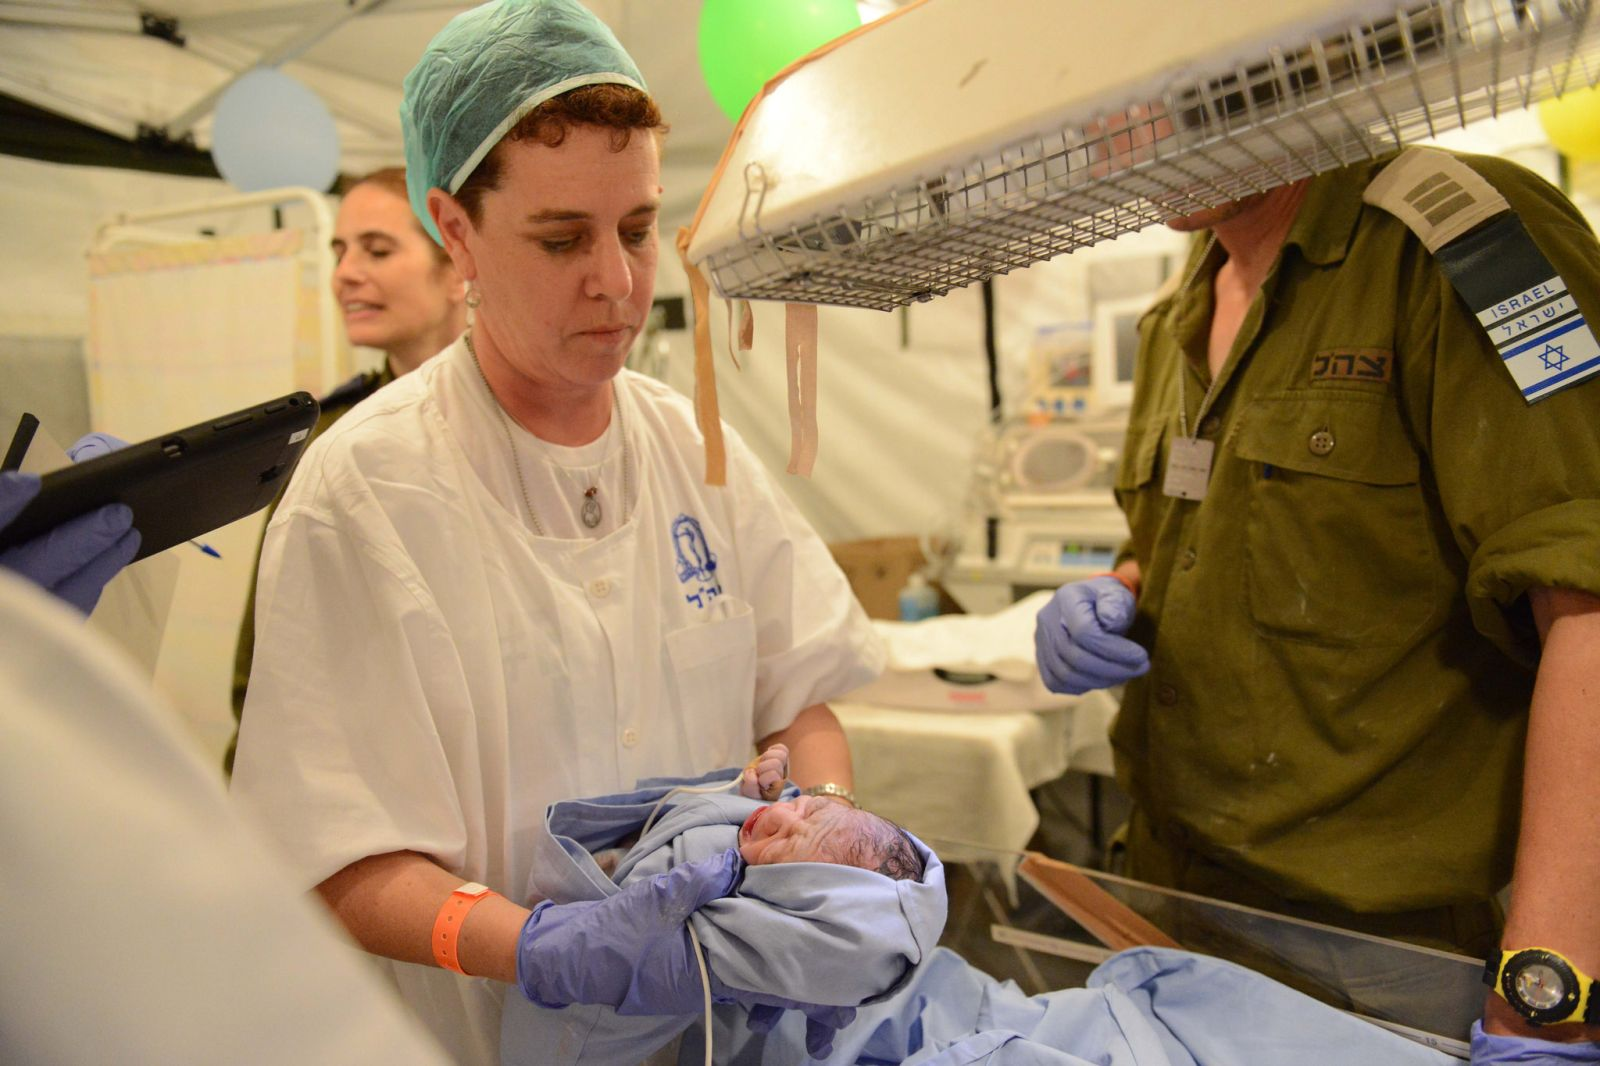 A baby is born at the IDF field hospital in Nepal. Photo: IDF